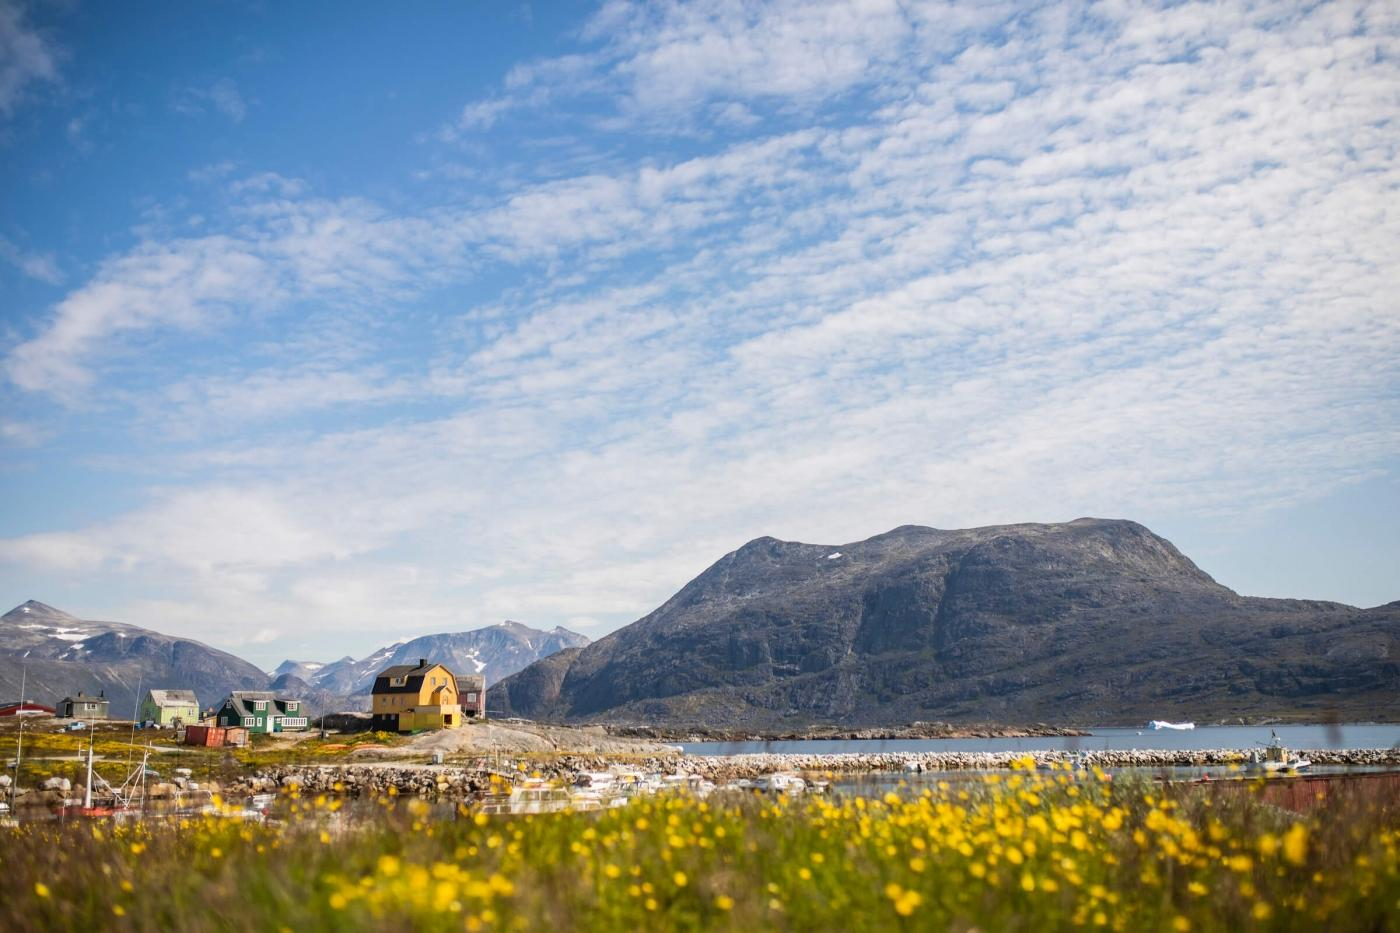 The coloured houses of Nanortalik in the distance, summer in South Greenland. Photo by Aningaaq R Carlsen - Visit Greenland